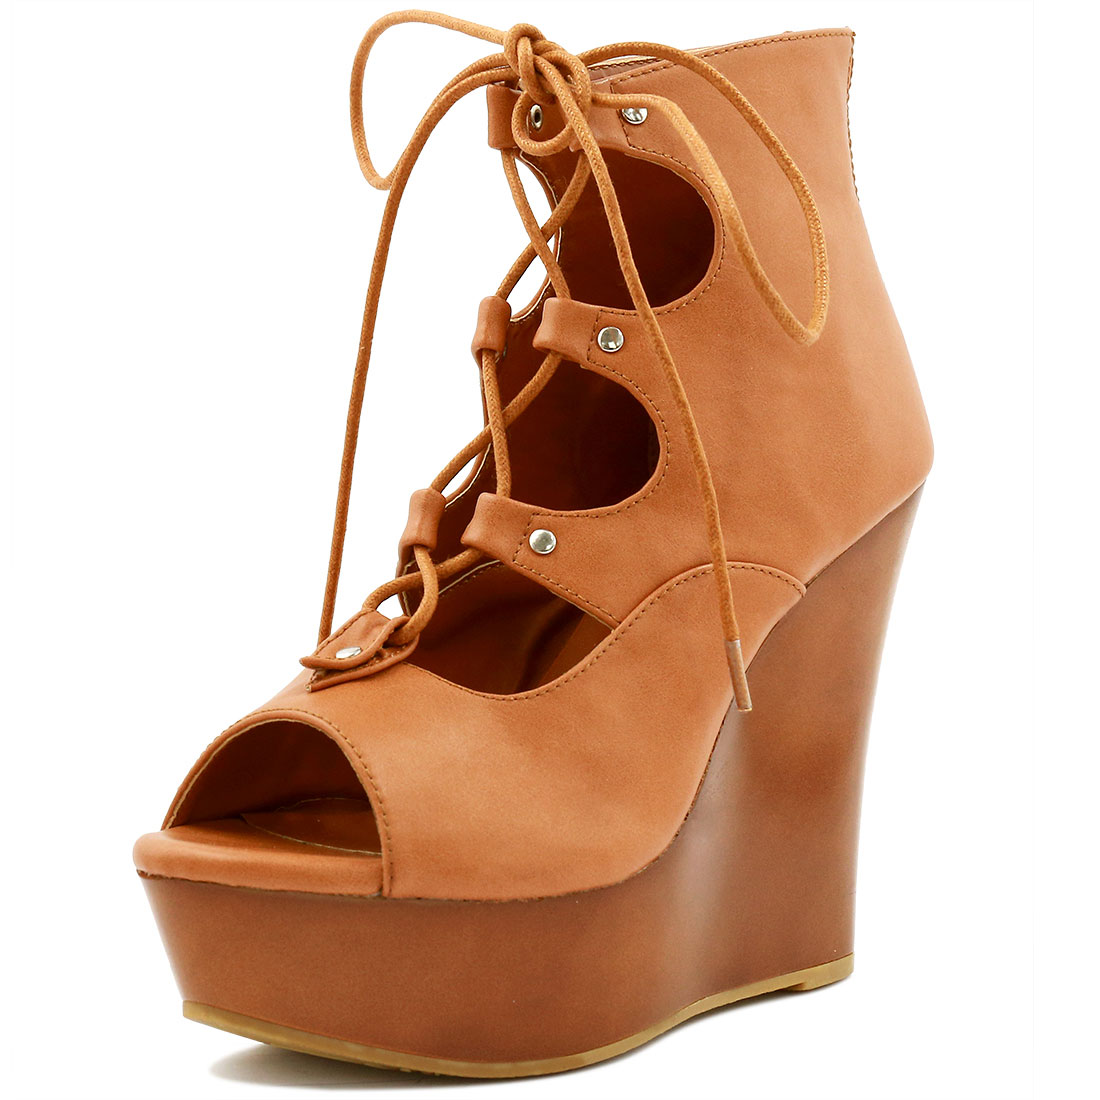 Woman Peep Toe Lace-Up Cutout Platform Wedge Sandals Brown US 9